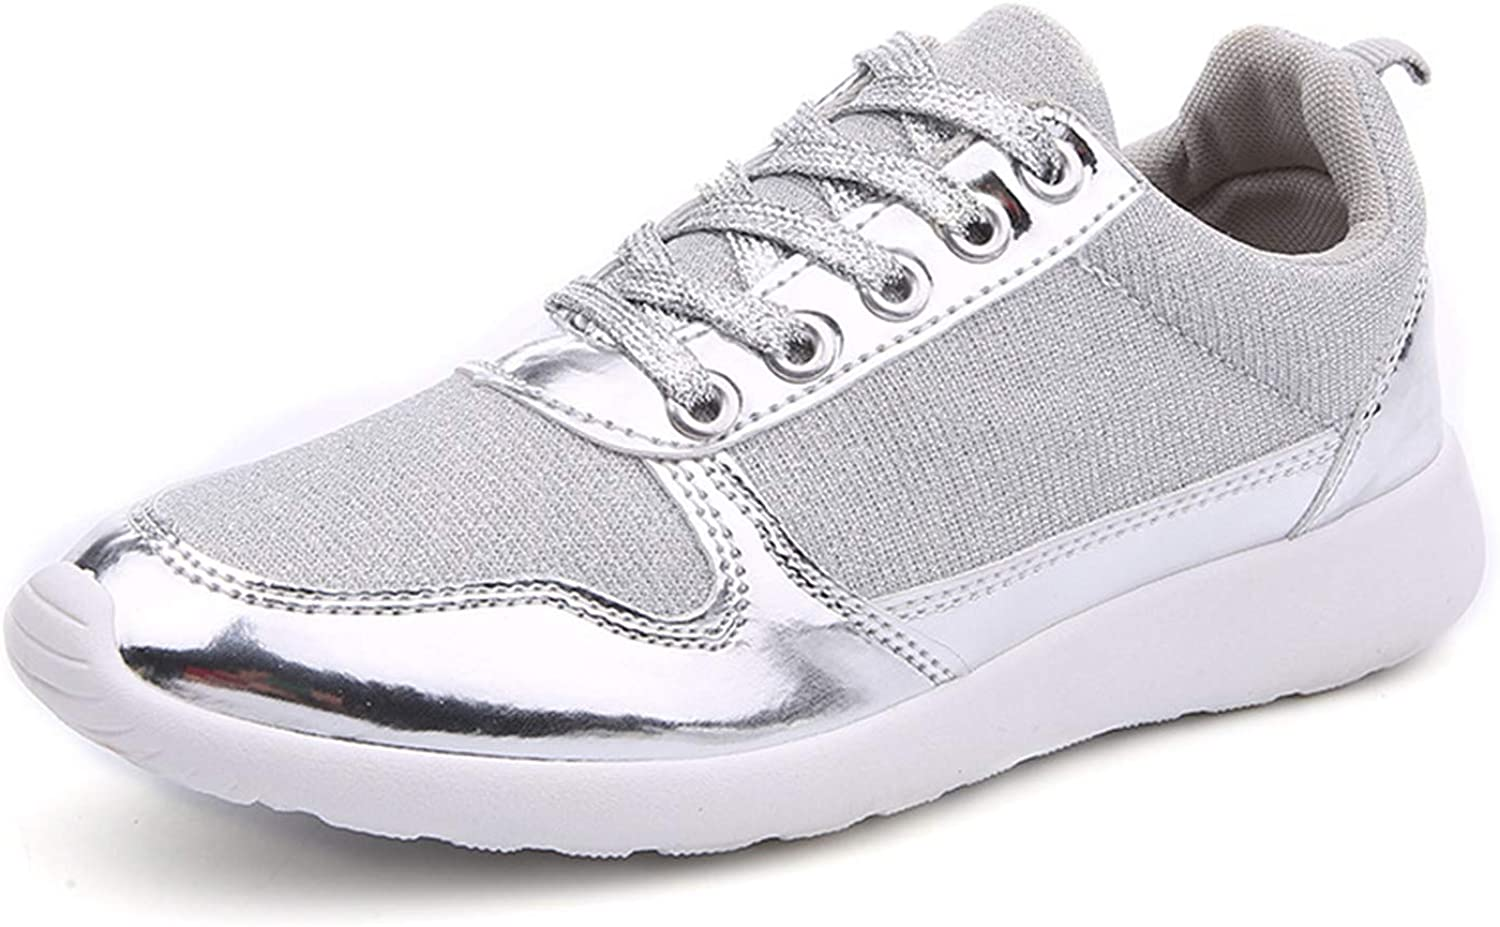 HarMQ Fashion Femme Rubber Women Casual shoes gold Silver Mesh Woman Breathable Casual shoes Silver Sneakers 6.5